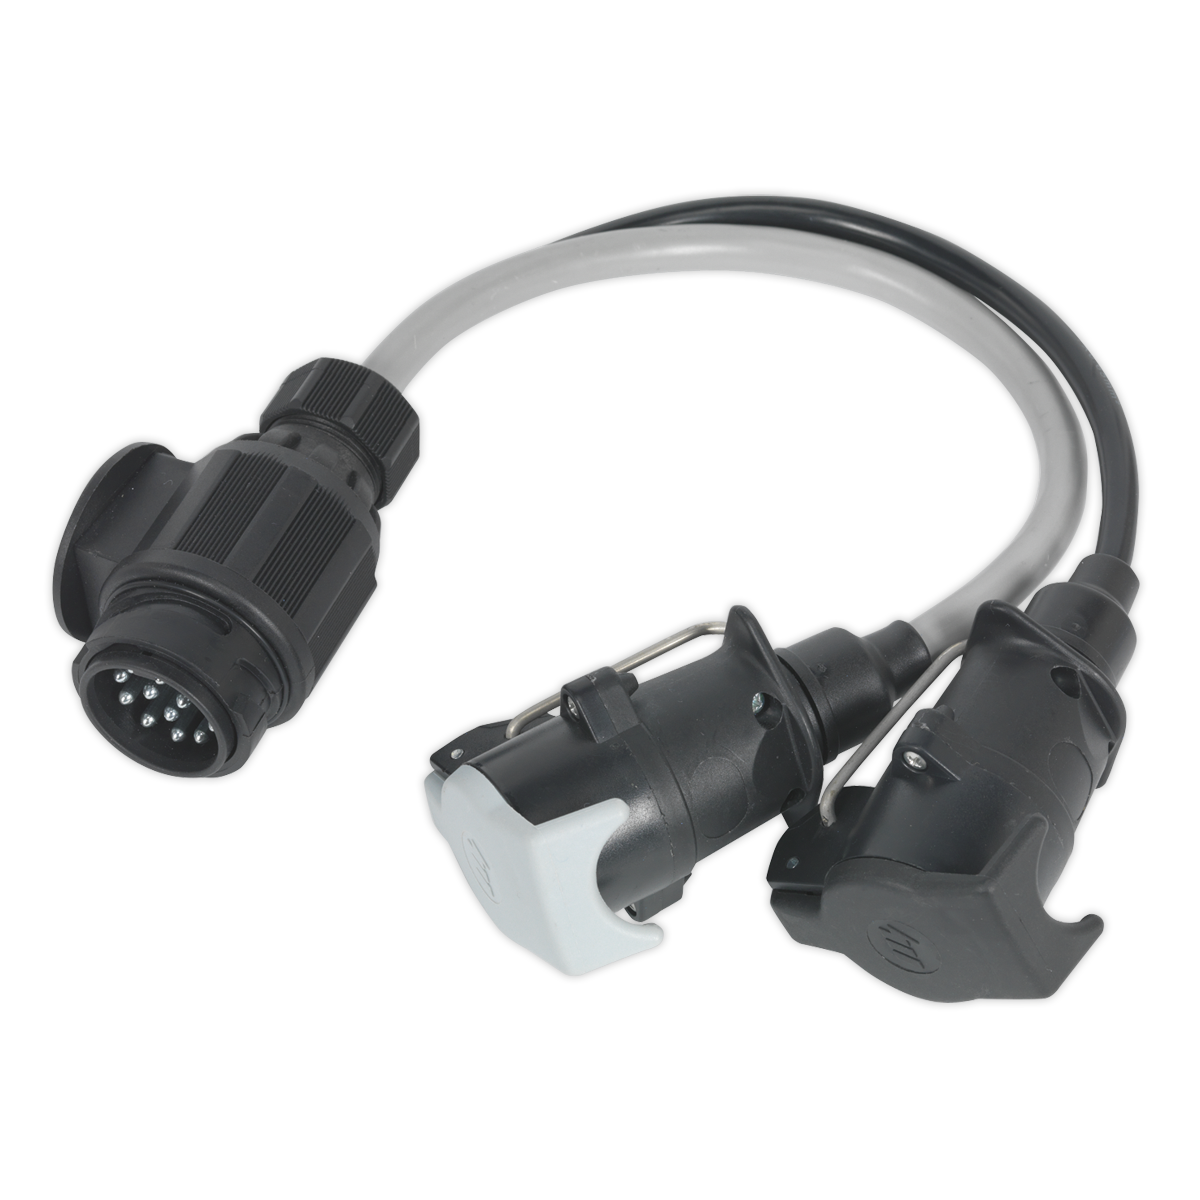 Conversion Lead 13-Pin Euro to 7-Pin N & S Type Plugs 12V